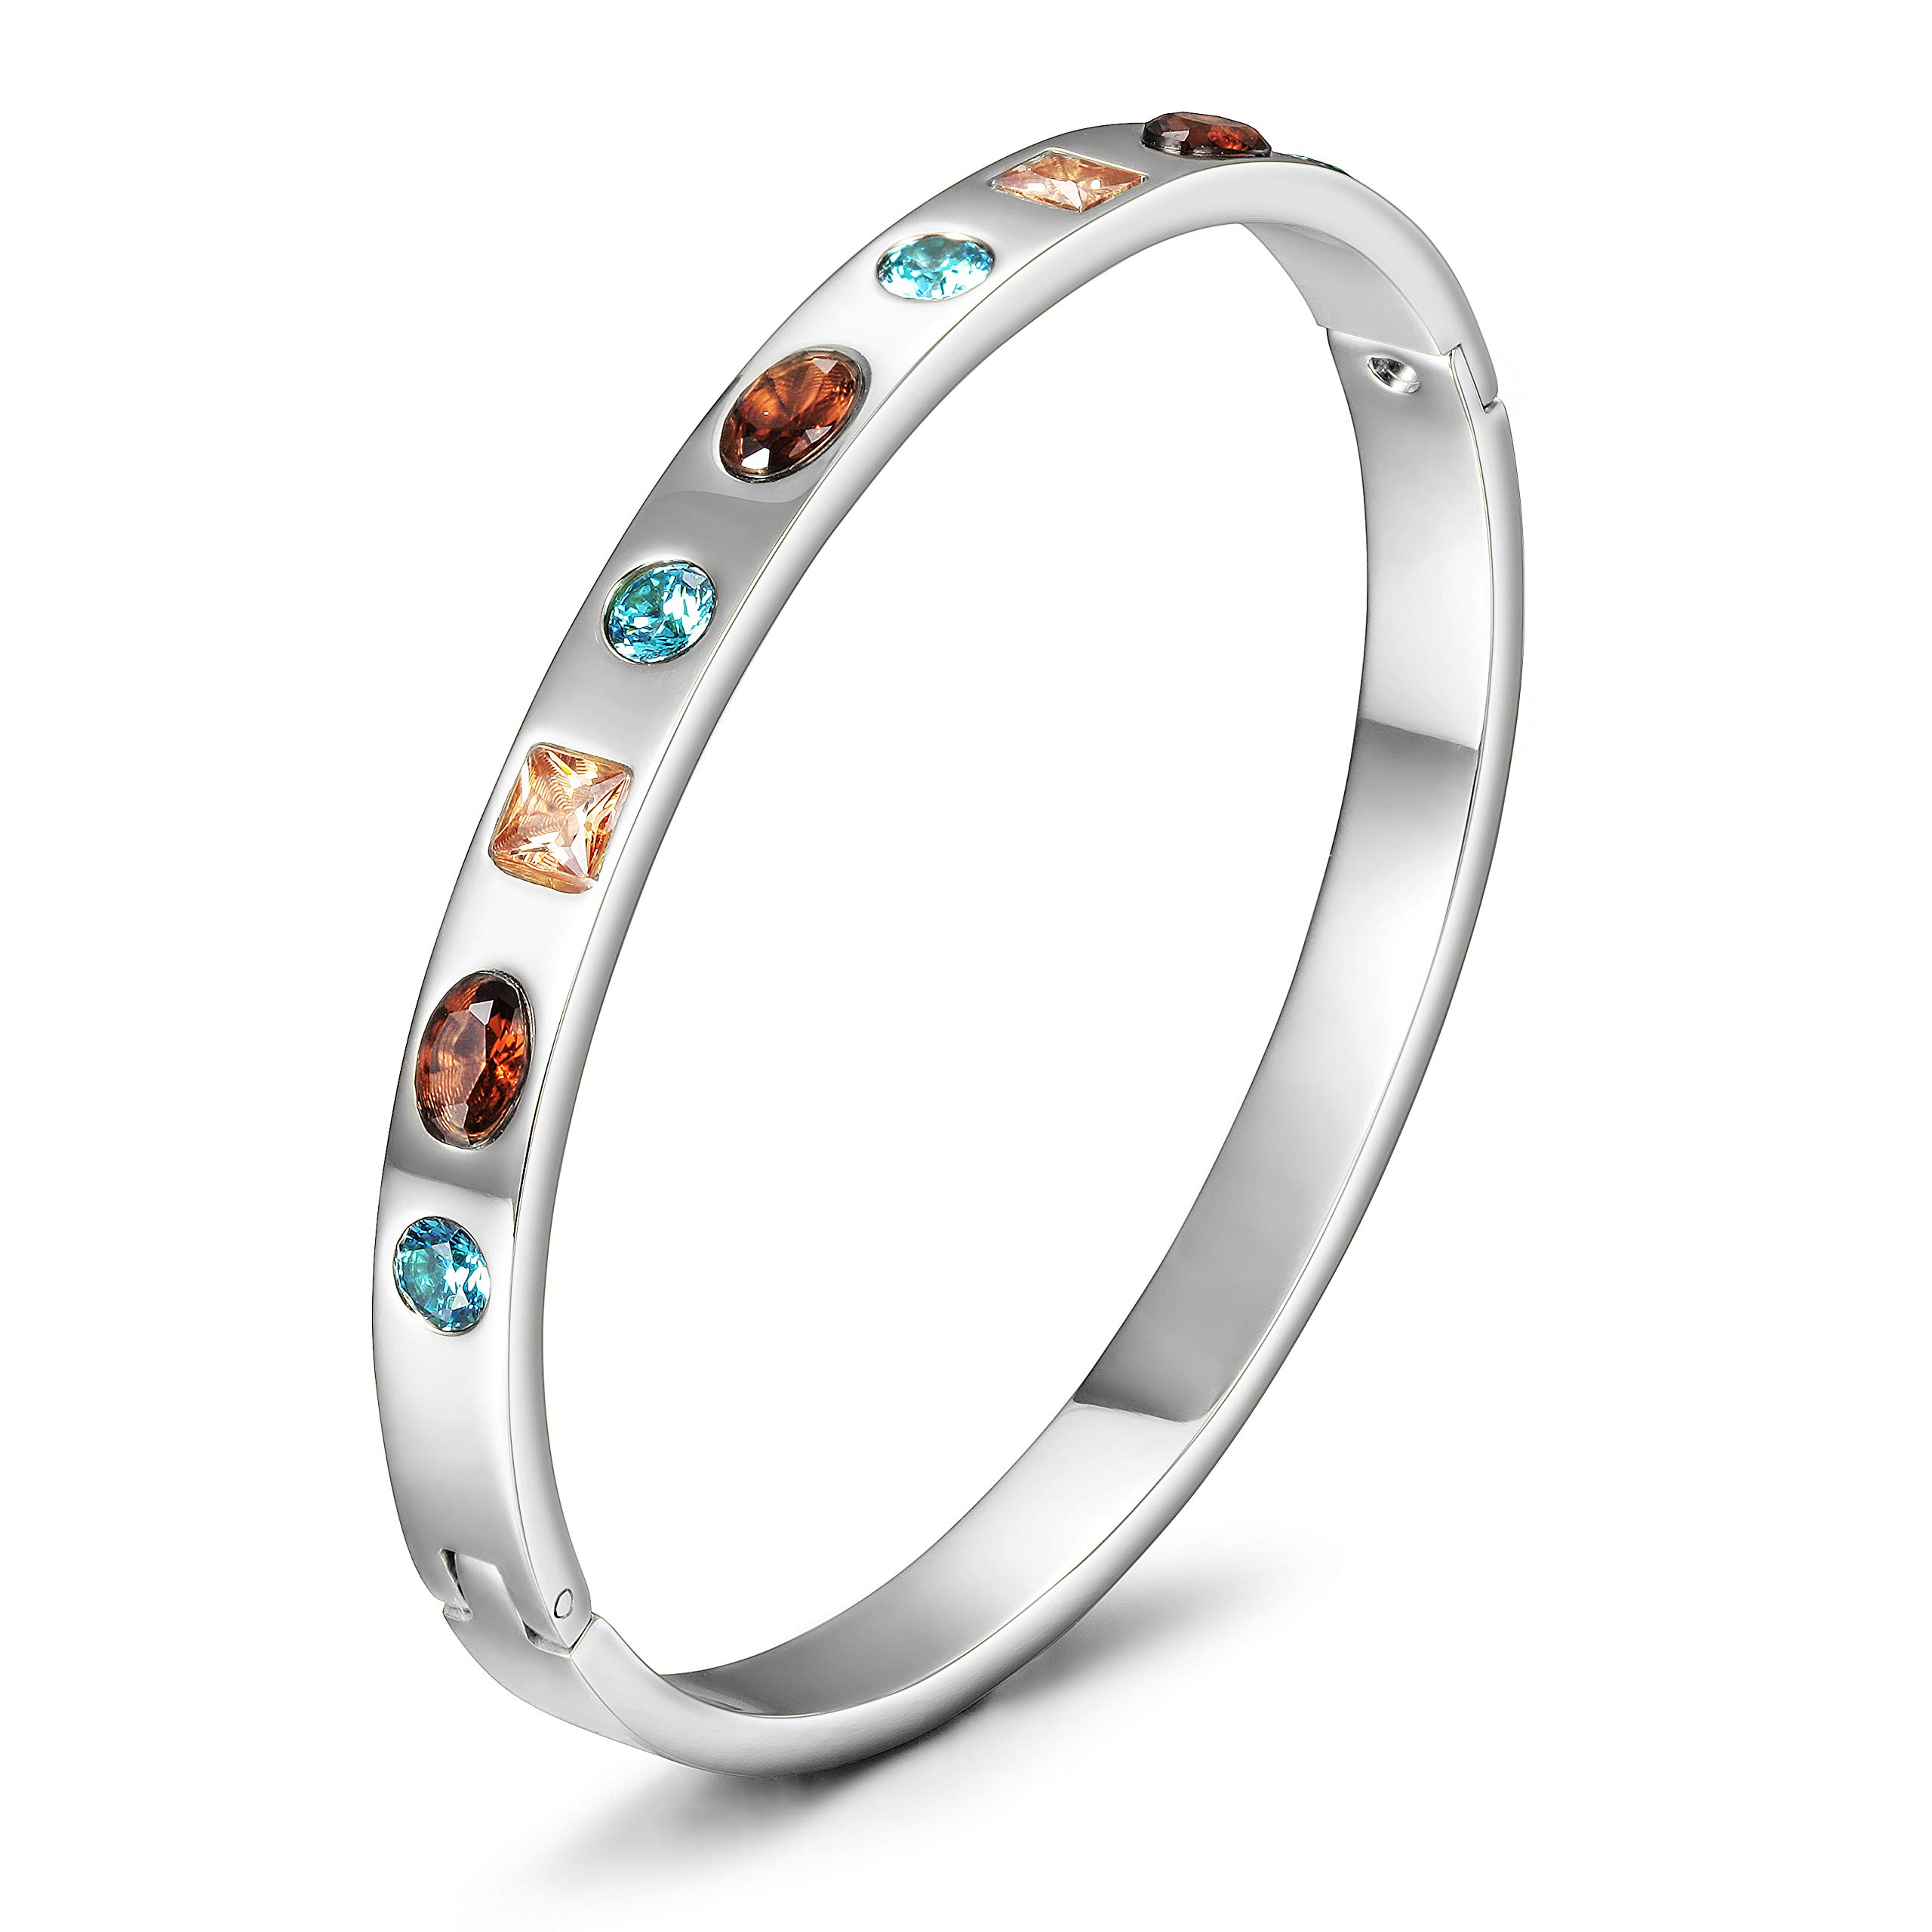 CIUNOFOR Cubic Zirconia Bracelet with 9 Colored Stones for Women Girls Stainless Steel Bangle Silver Rose Gold Plate Tone Wide Band Bracelet